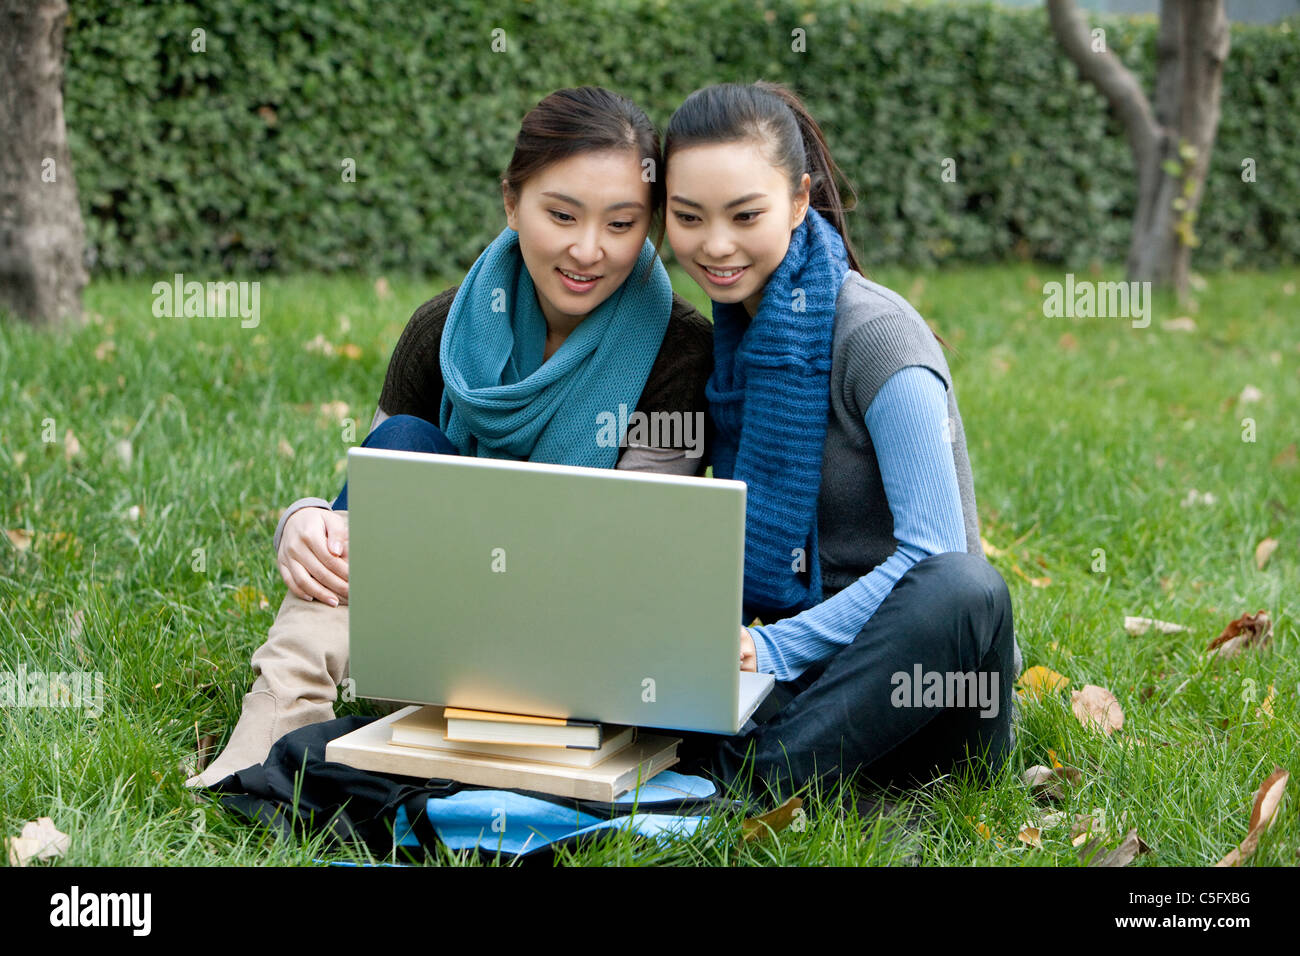 Two friends looking at a laptop while sitting outside in a grassy area - Stock Image